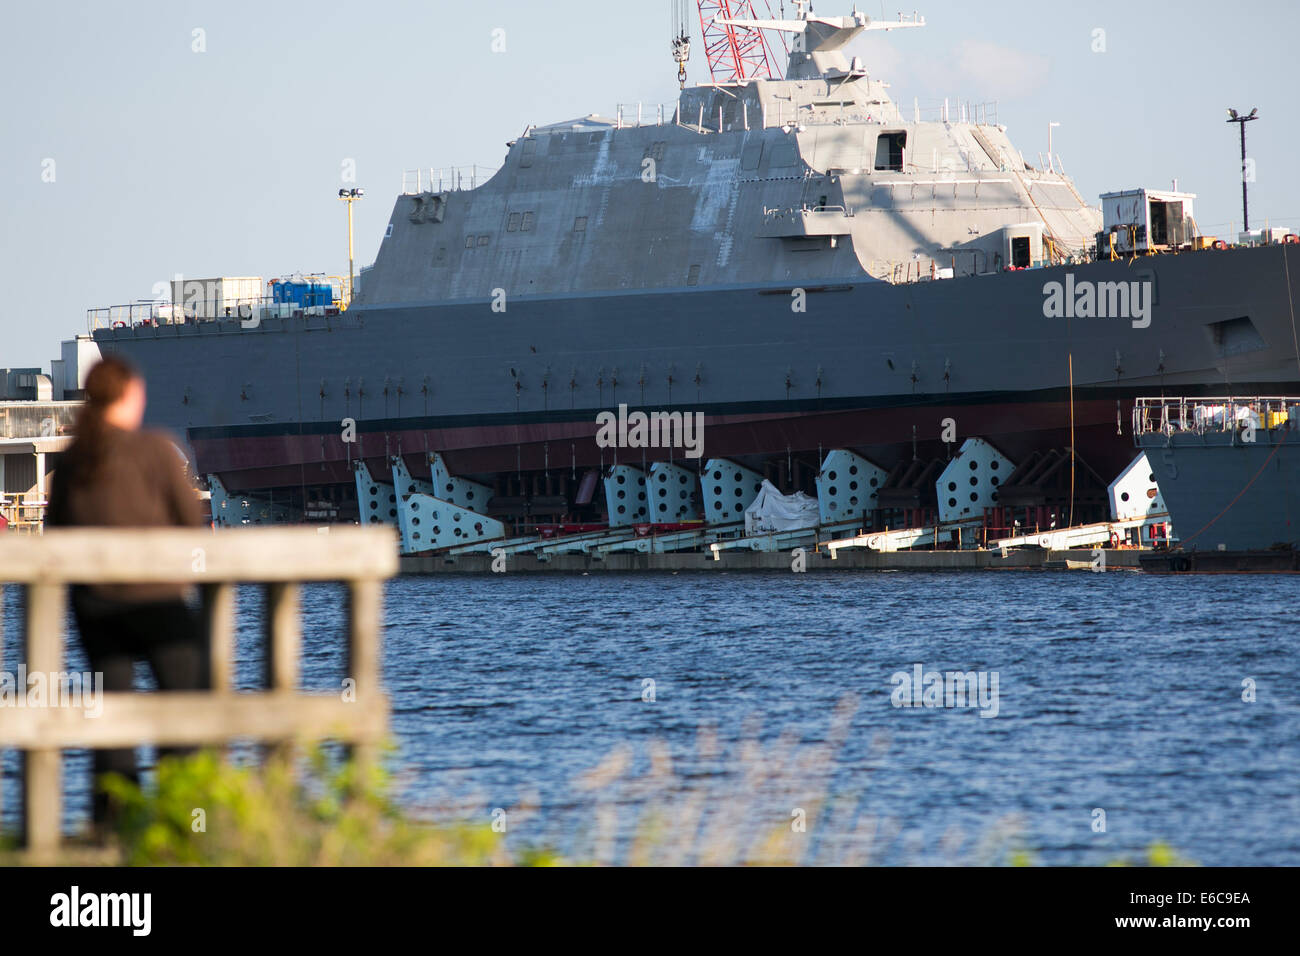 United States Navy Littoral Combat Ships under construction at Marinette Marine Corporation in Marinette, Wisconsin. - Stock Image